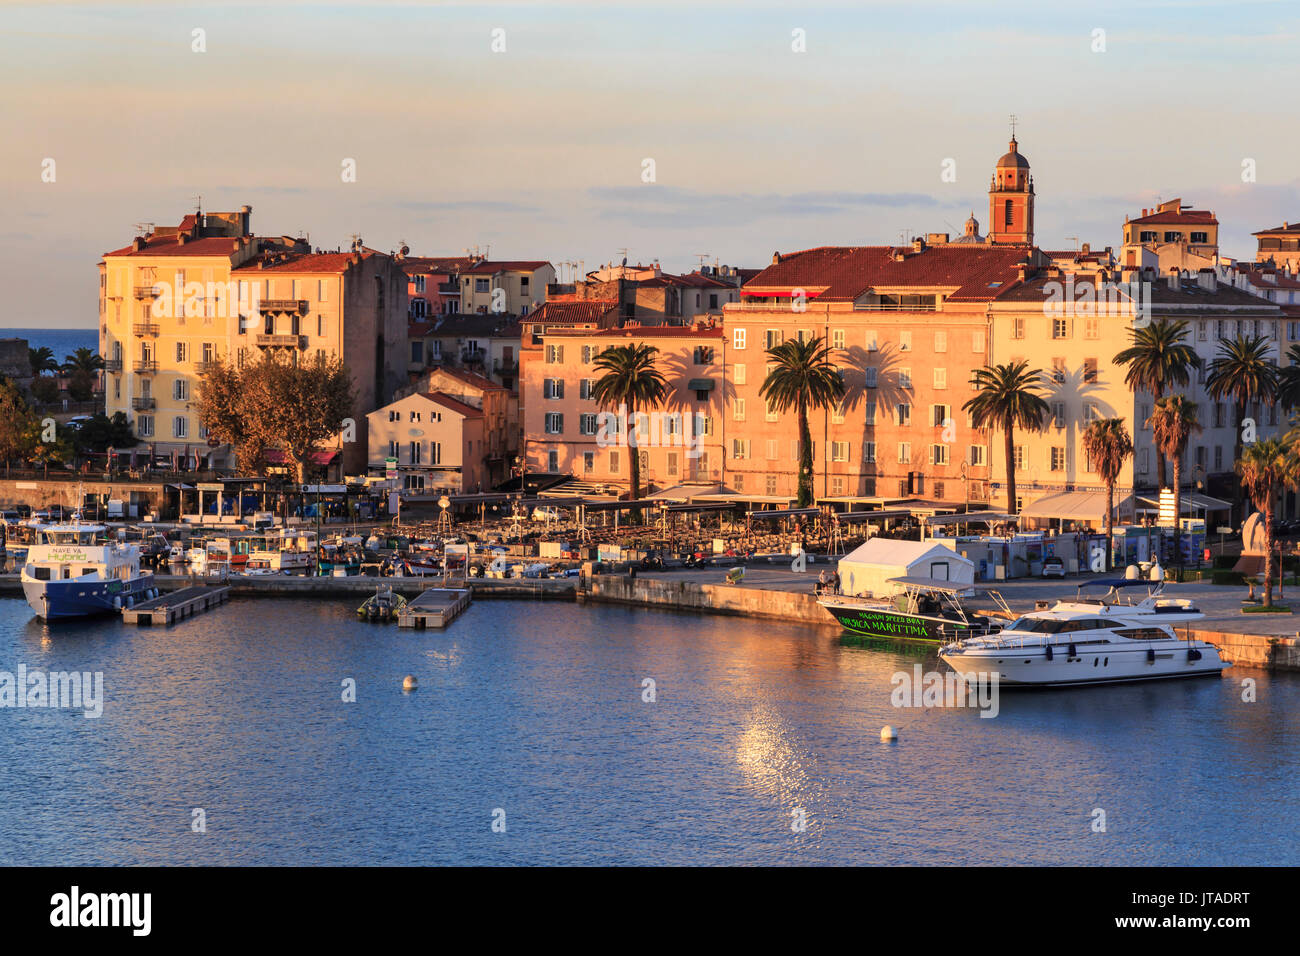 Ajaccio waterfront at sunrise, from the sea, Island of Corsica, Mediterranean, France, Mediterranean, Europe - Stock Image